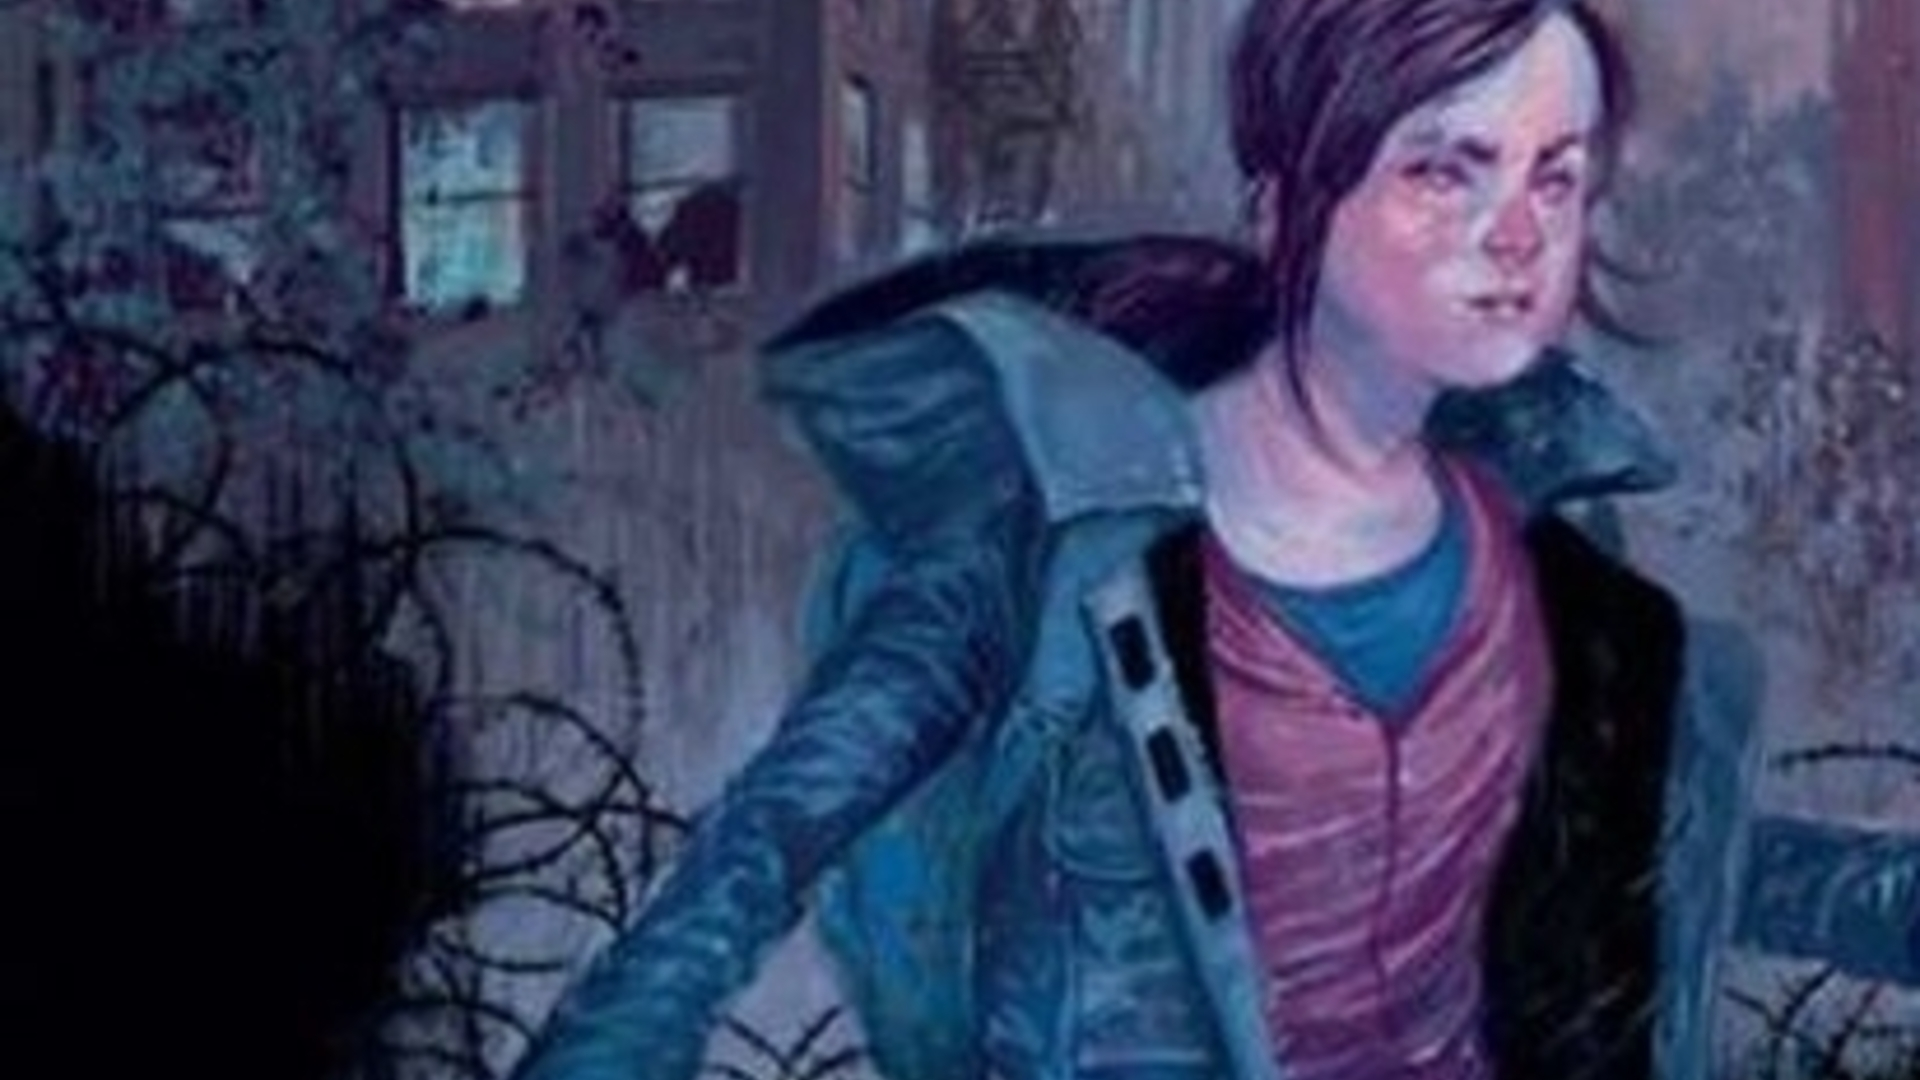 How The Last of Us' comic influenced the game